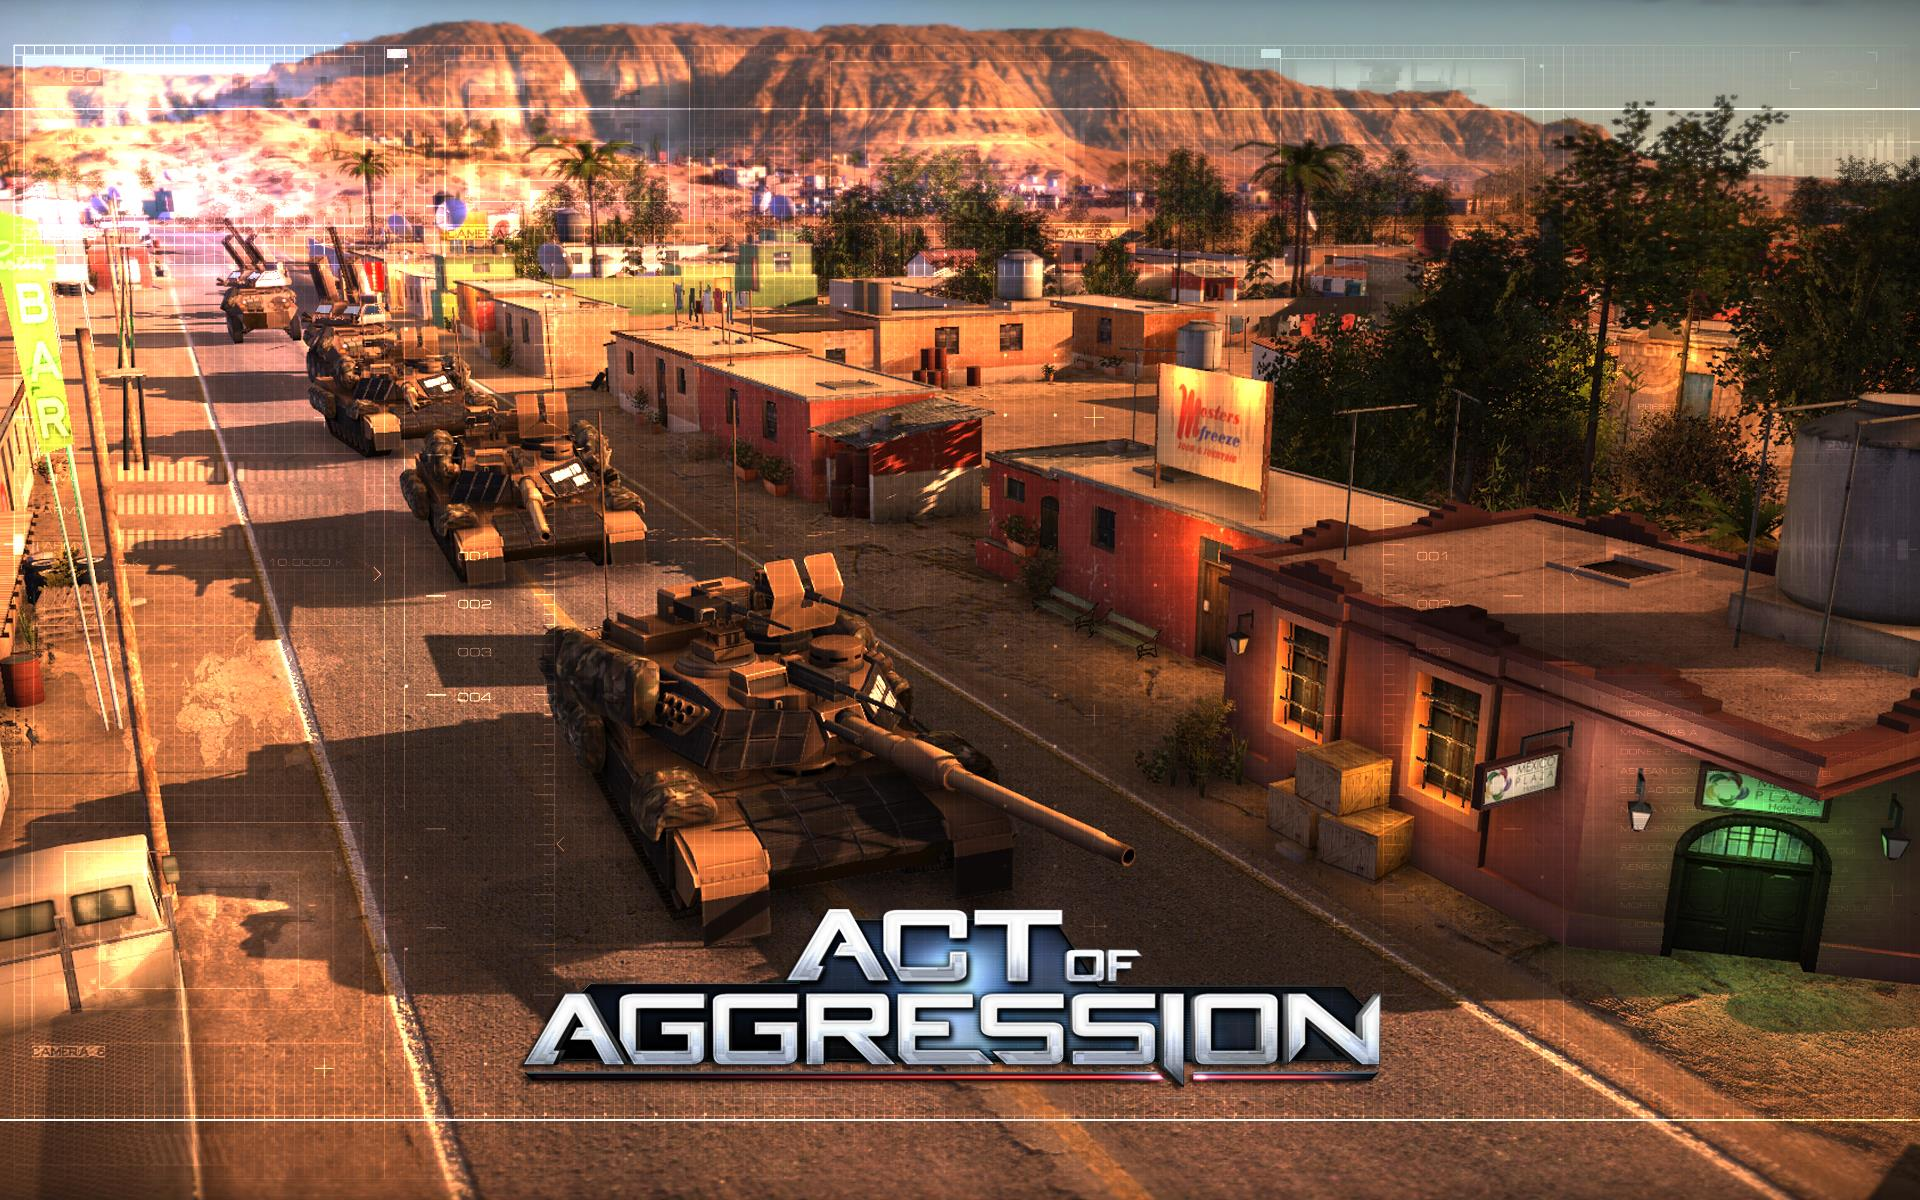 http://assets.vg247.com/current//2015/03/act_of_aggression_alpha_screen_2.jpg